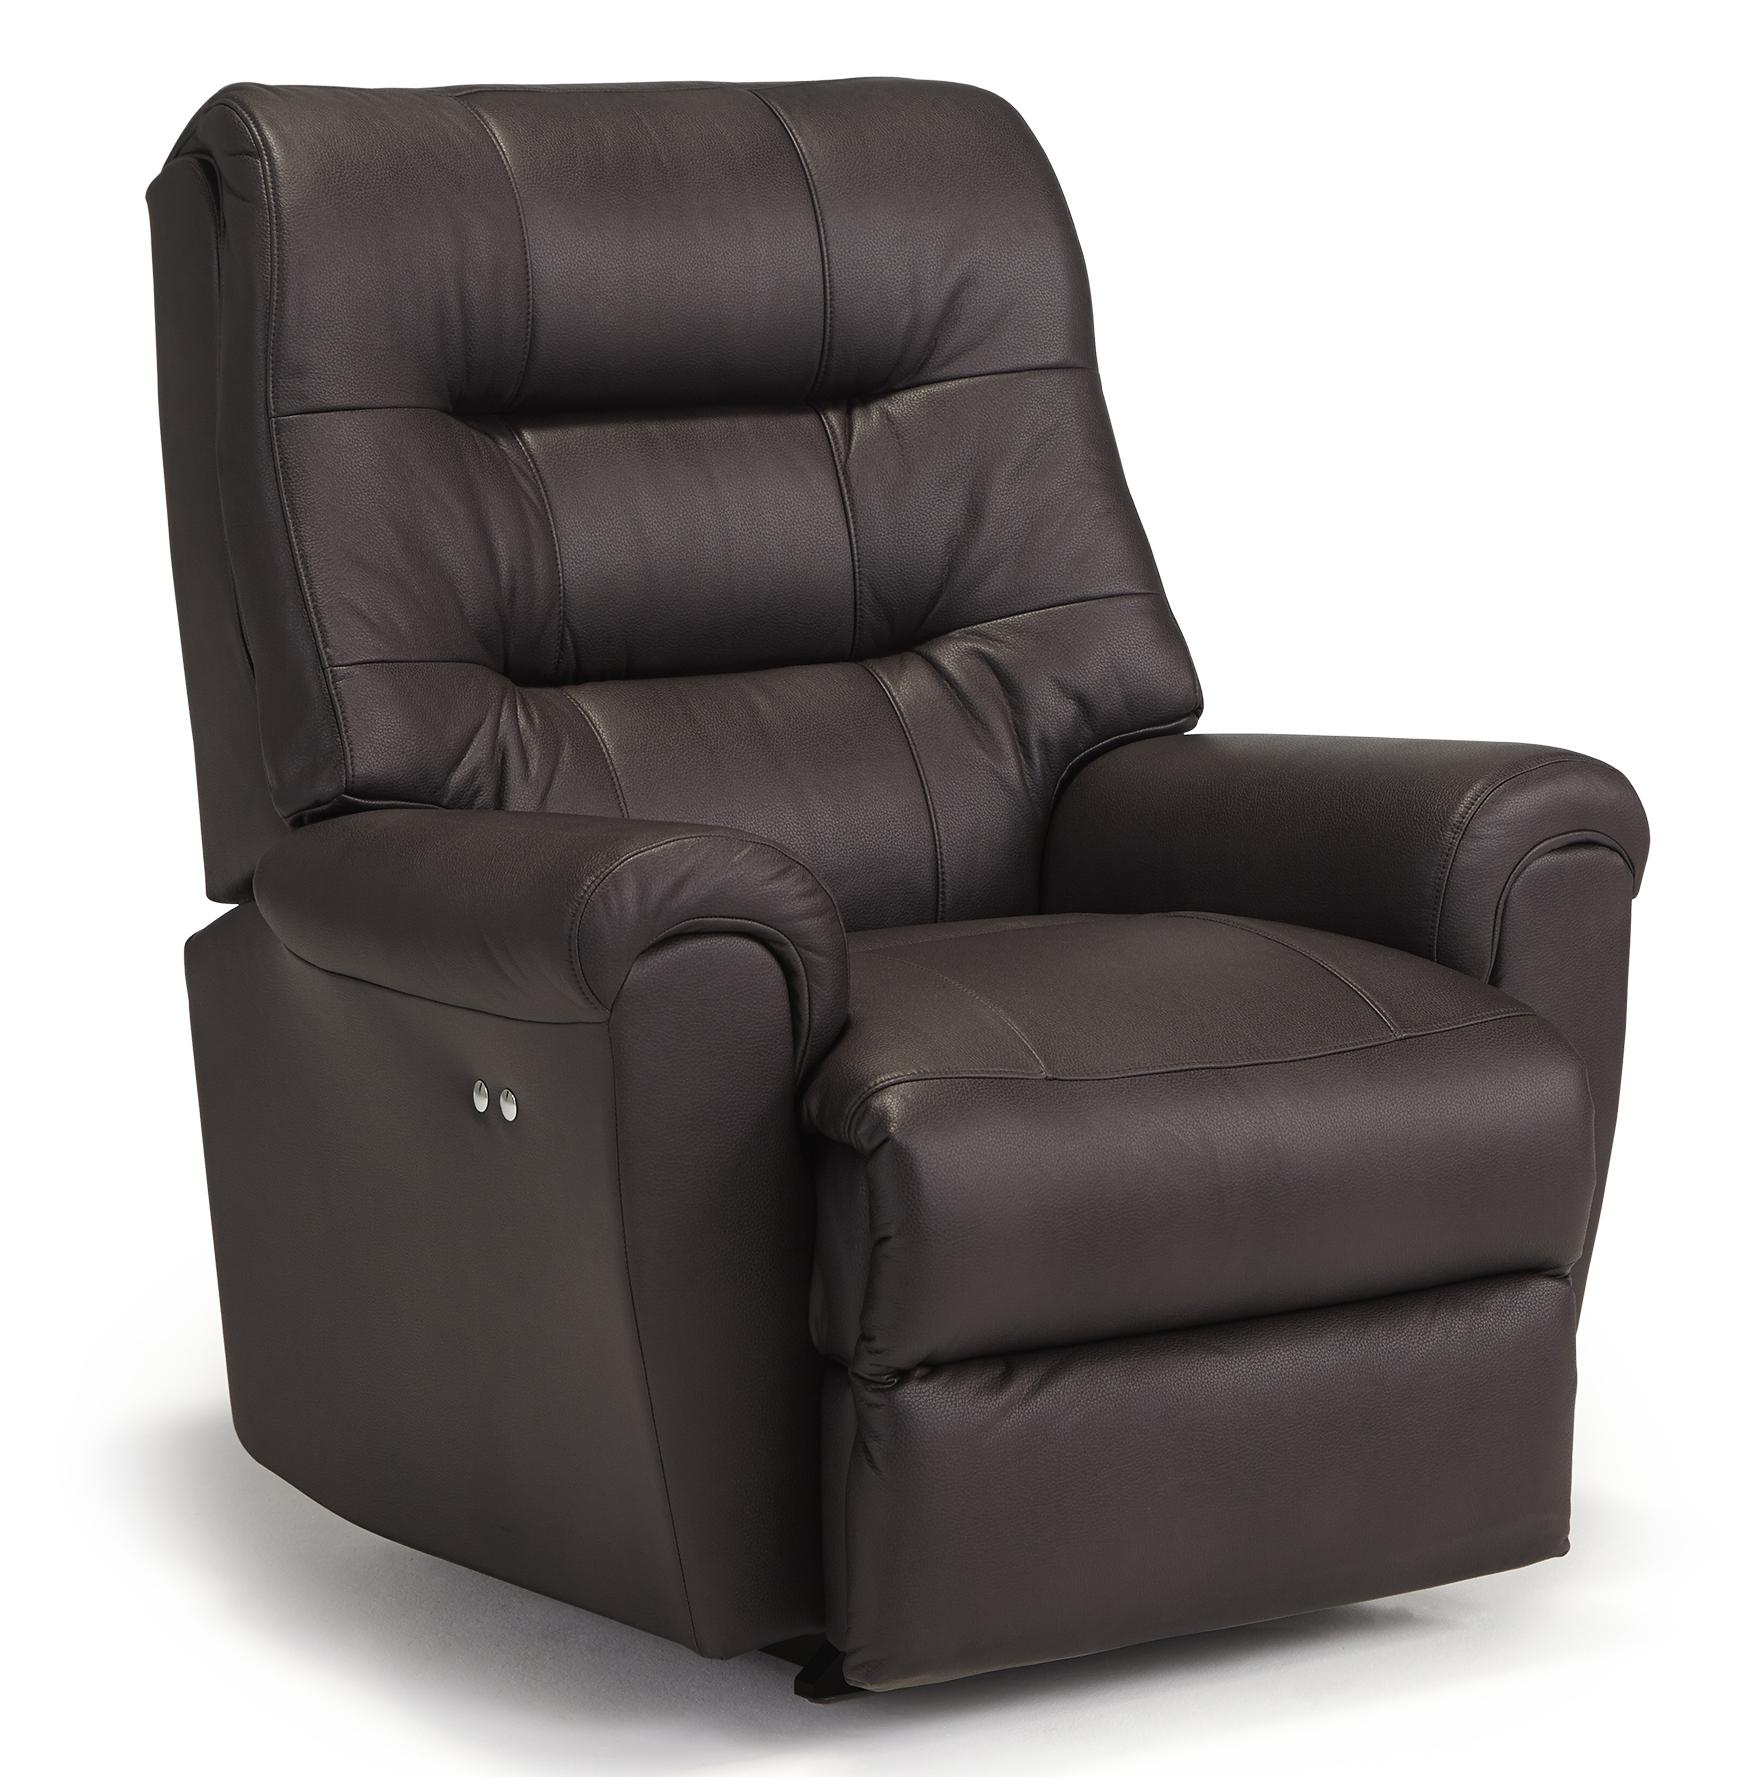 Best Home Furnishings Recliners - Medium Langston Space Saver Recliner - Item Number: 8N24U-27593BU